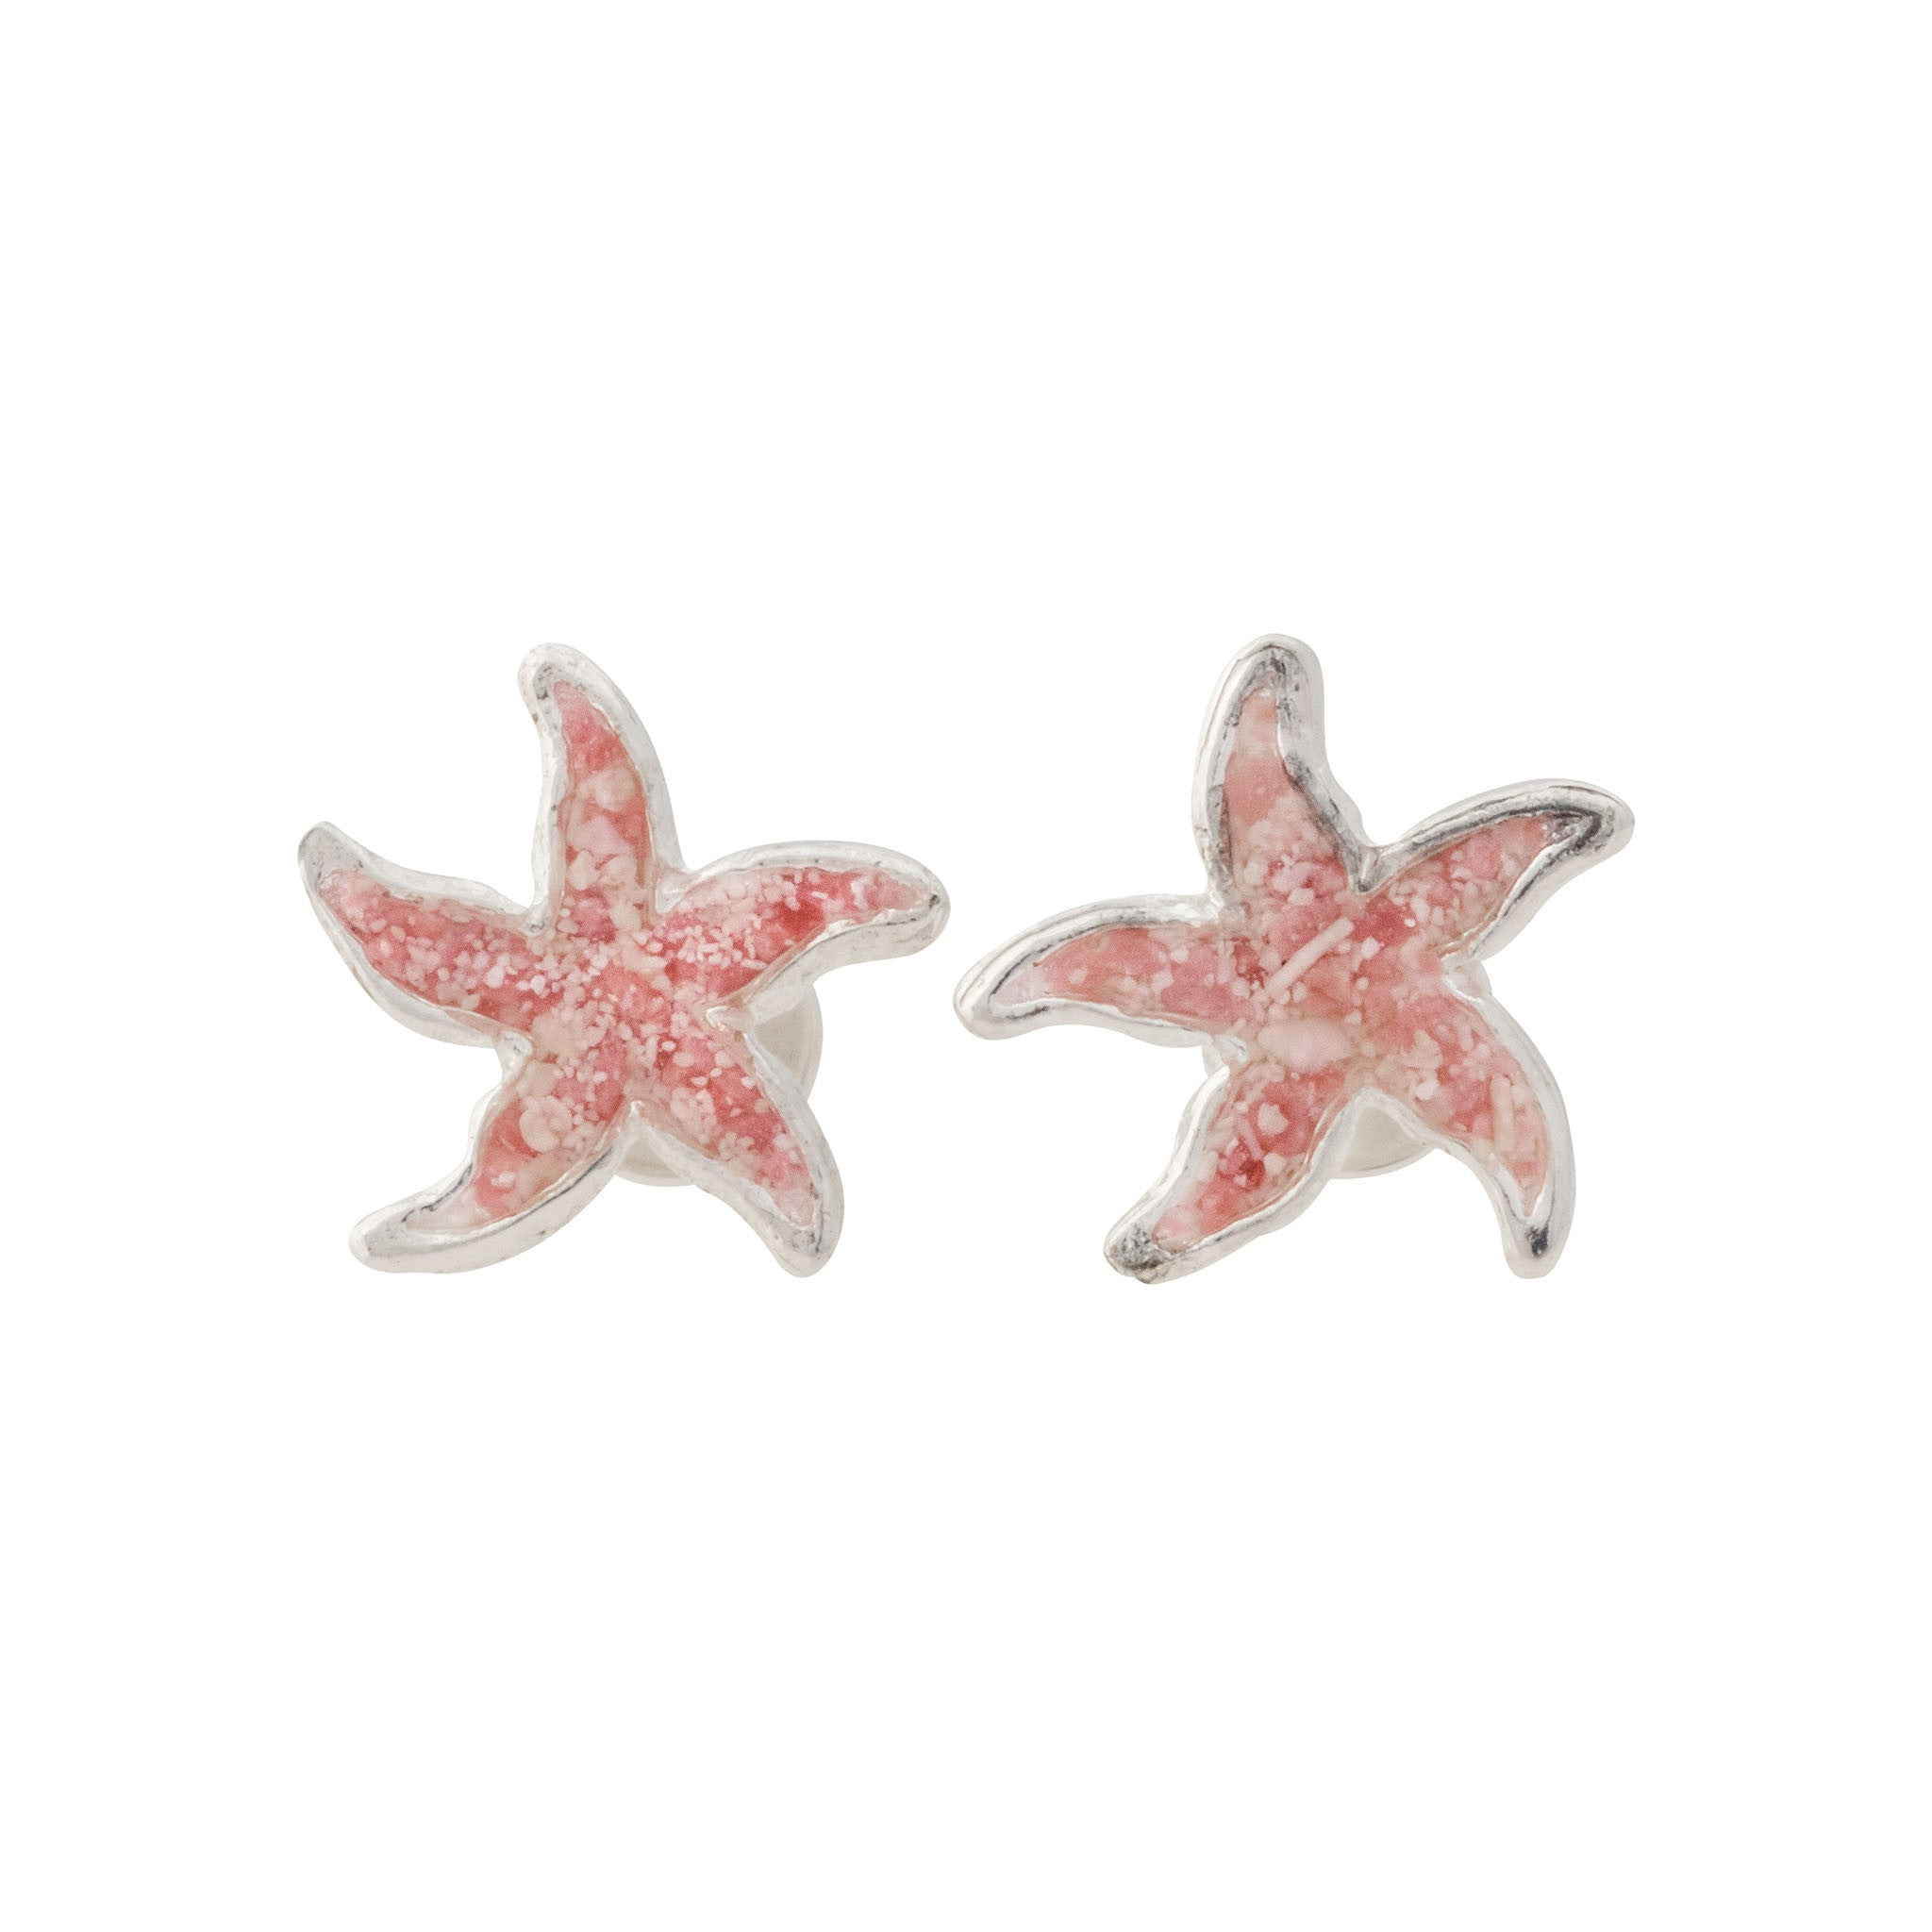 stud dp starfish earrings jewelry sterling amazon silver com dancing star pave cz bling earing